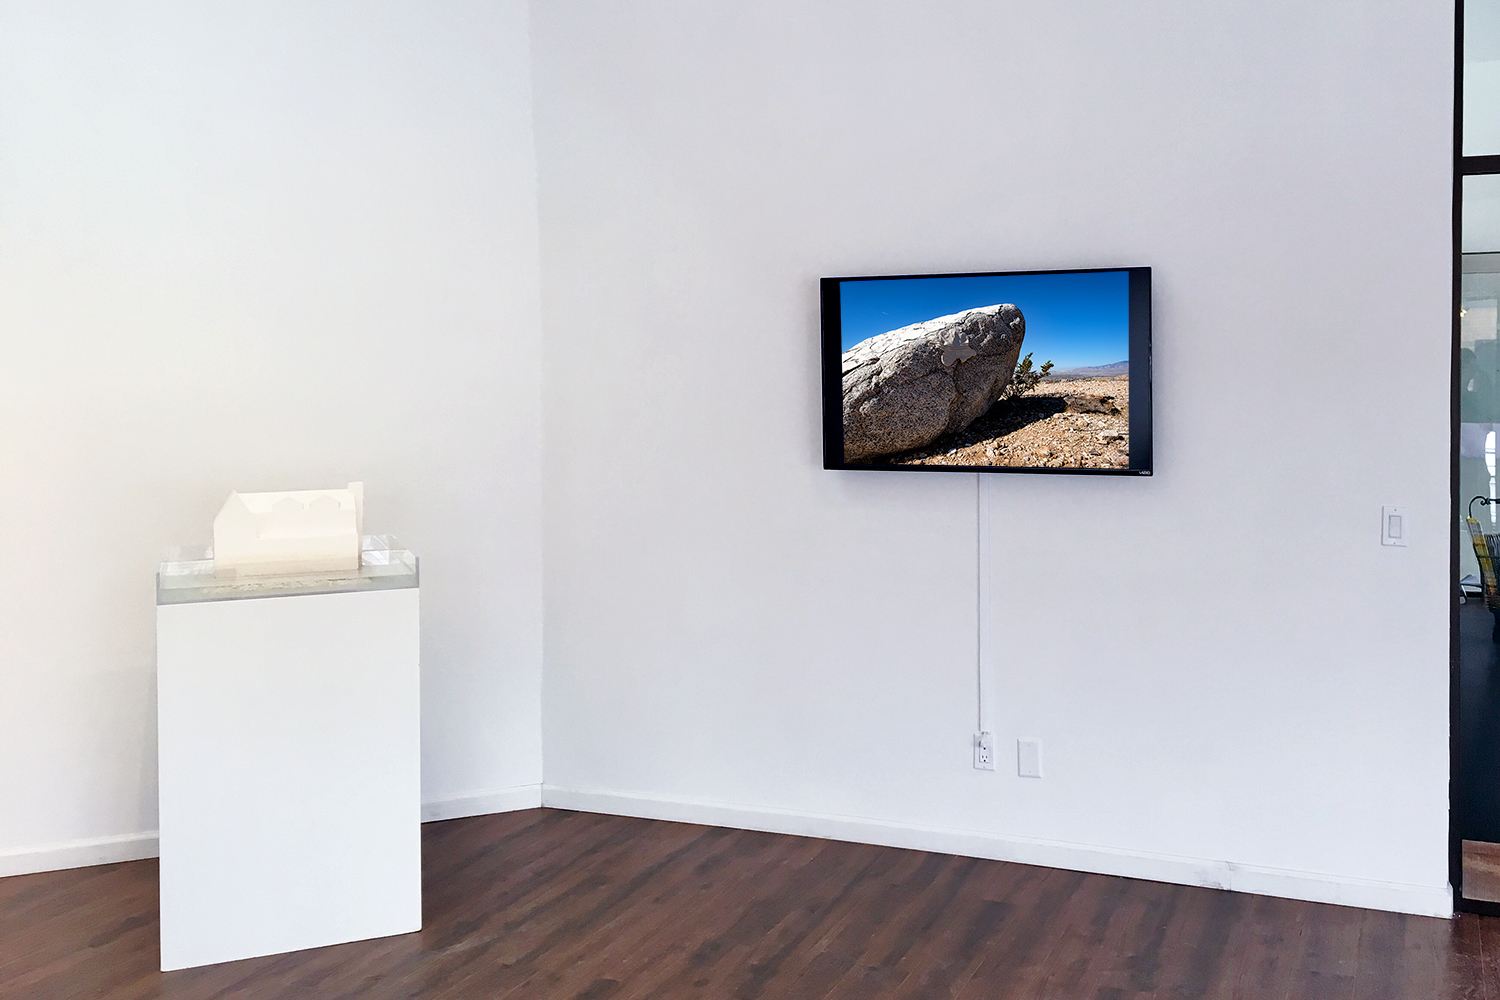 The Generative Object, installation view